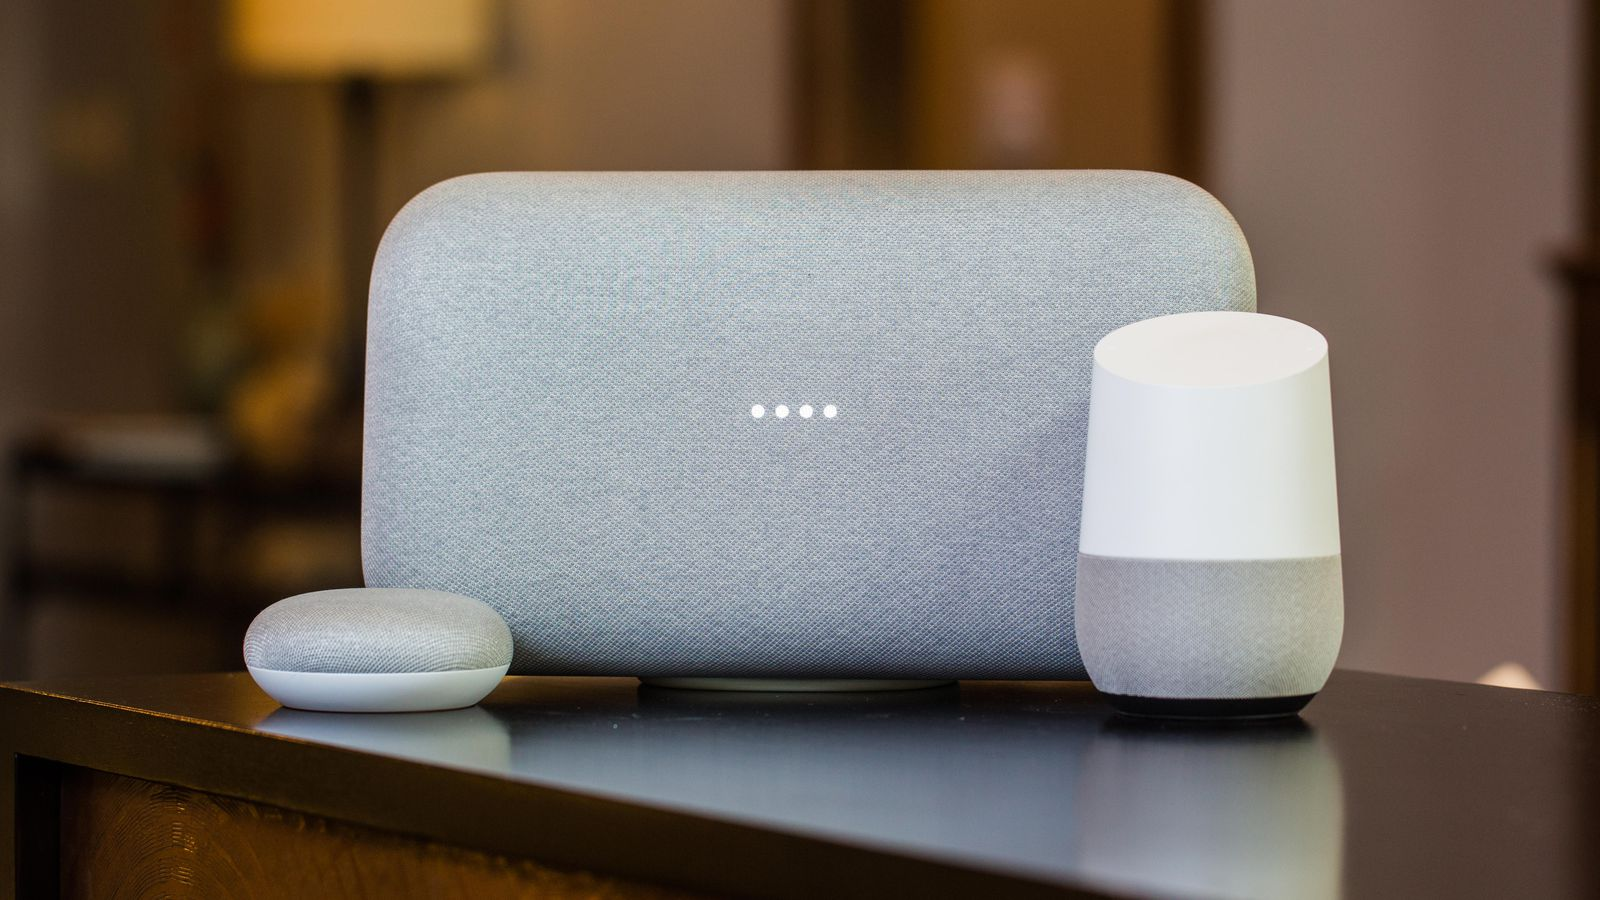 Introduction to Google Home